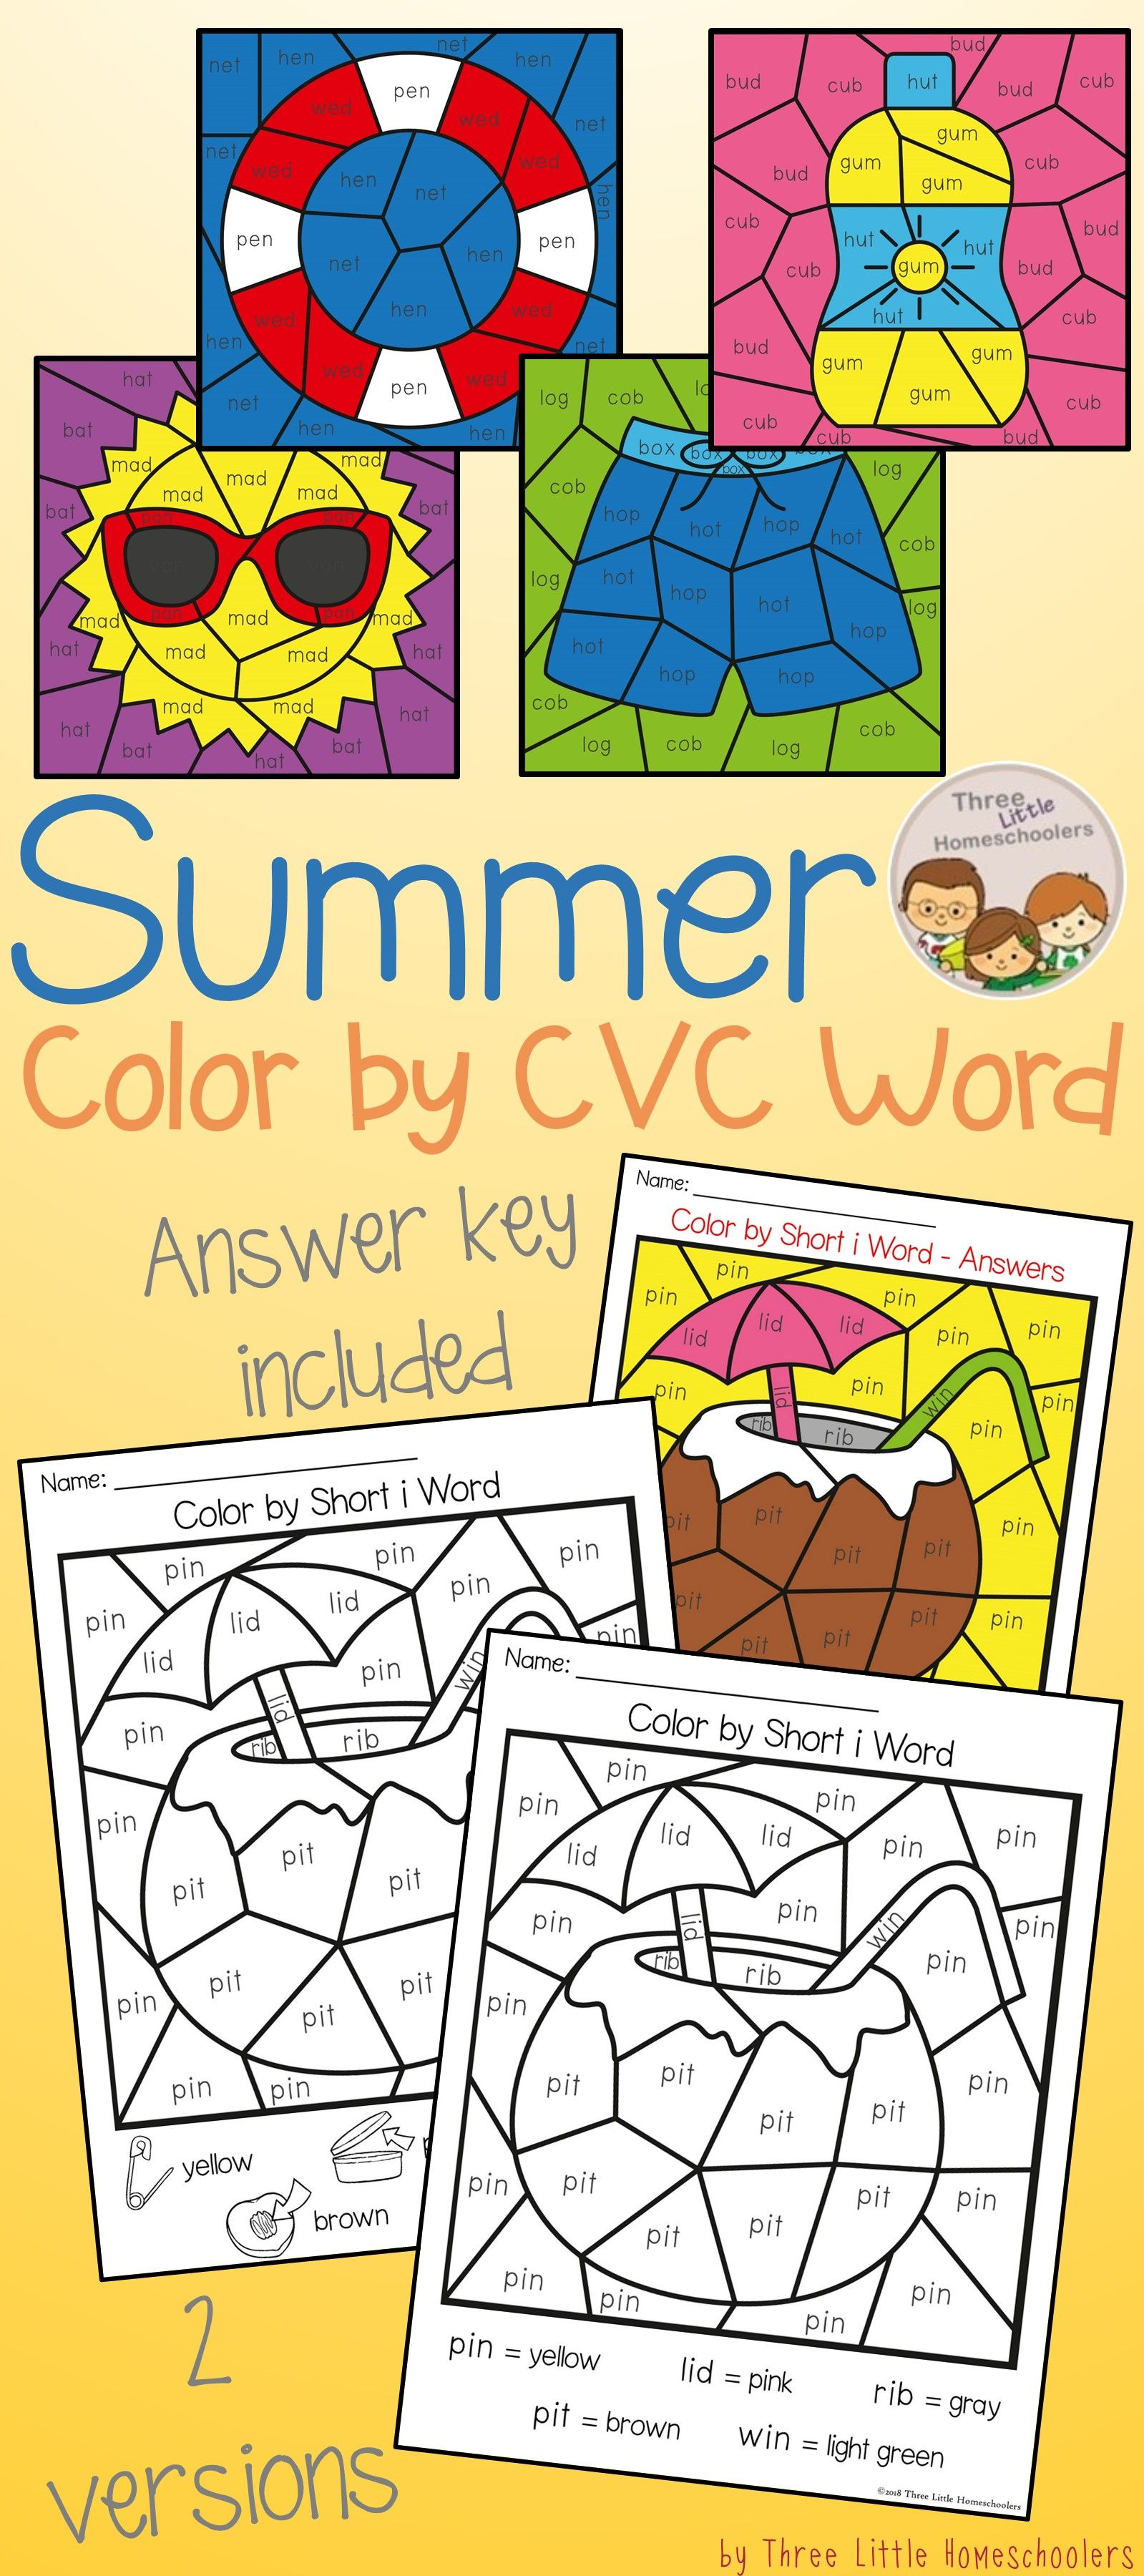 Summer Color By Cvc Word